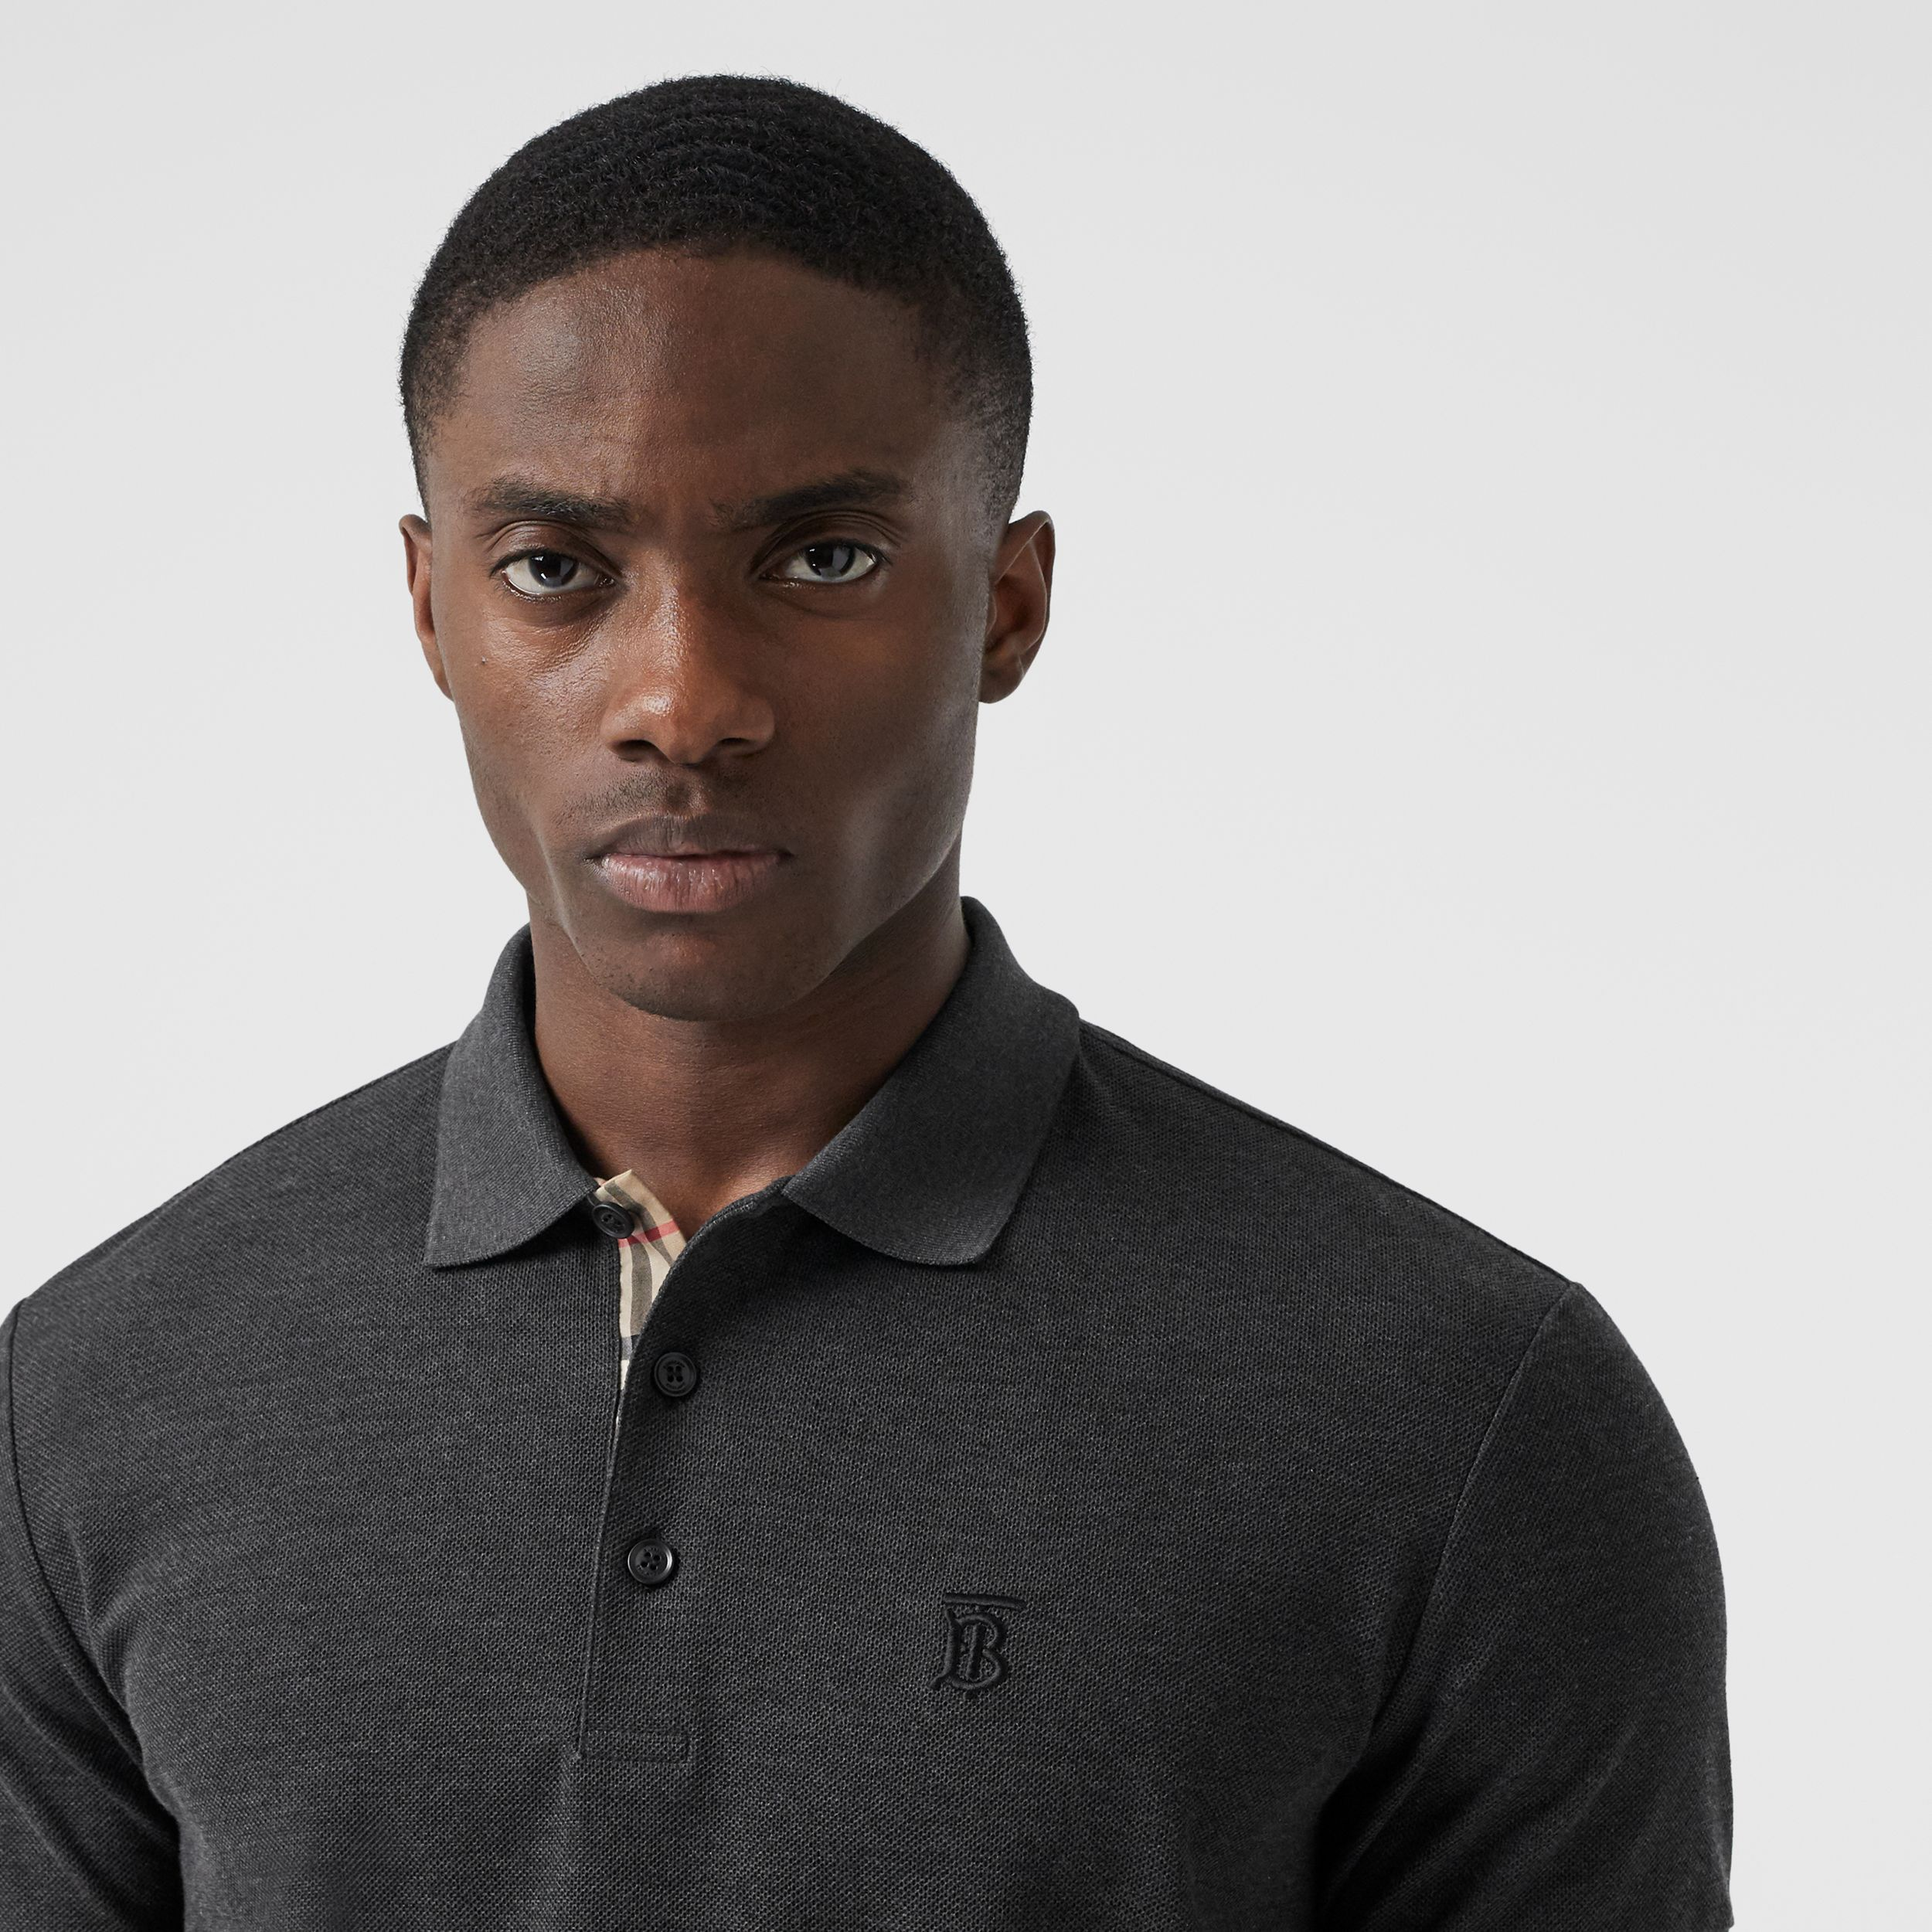 Monogram Motif Cotton Piqué Polo Shirt in Charcoal Melange - Men | Burberry Canada - 2